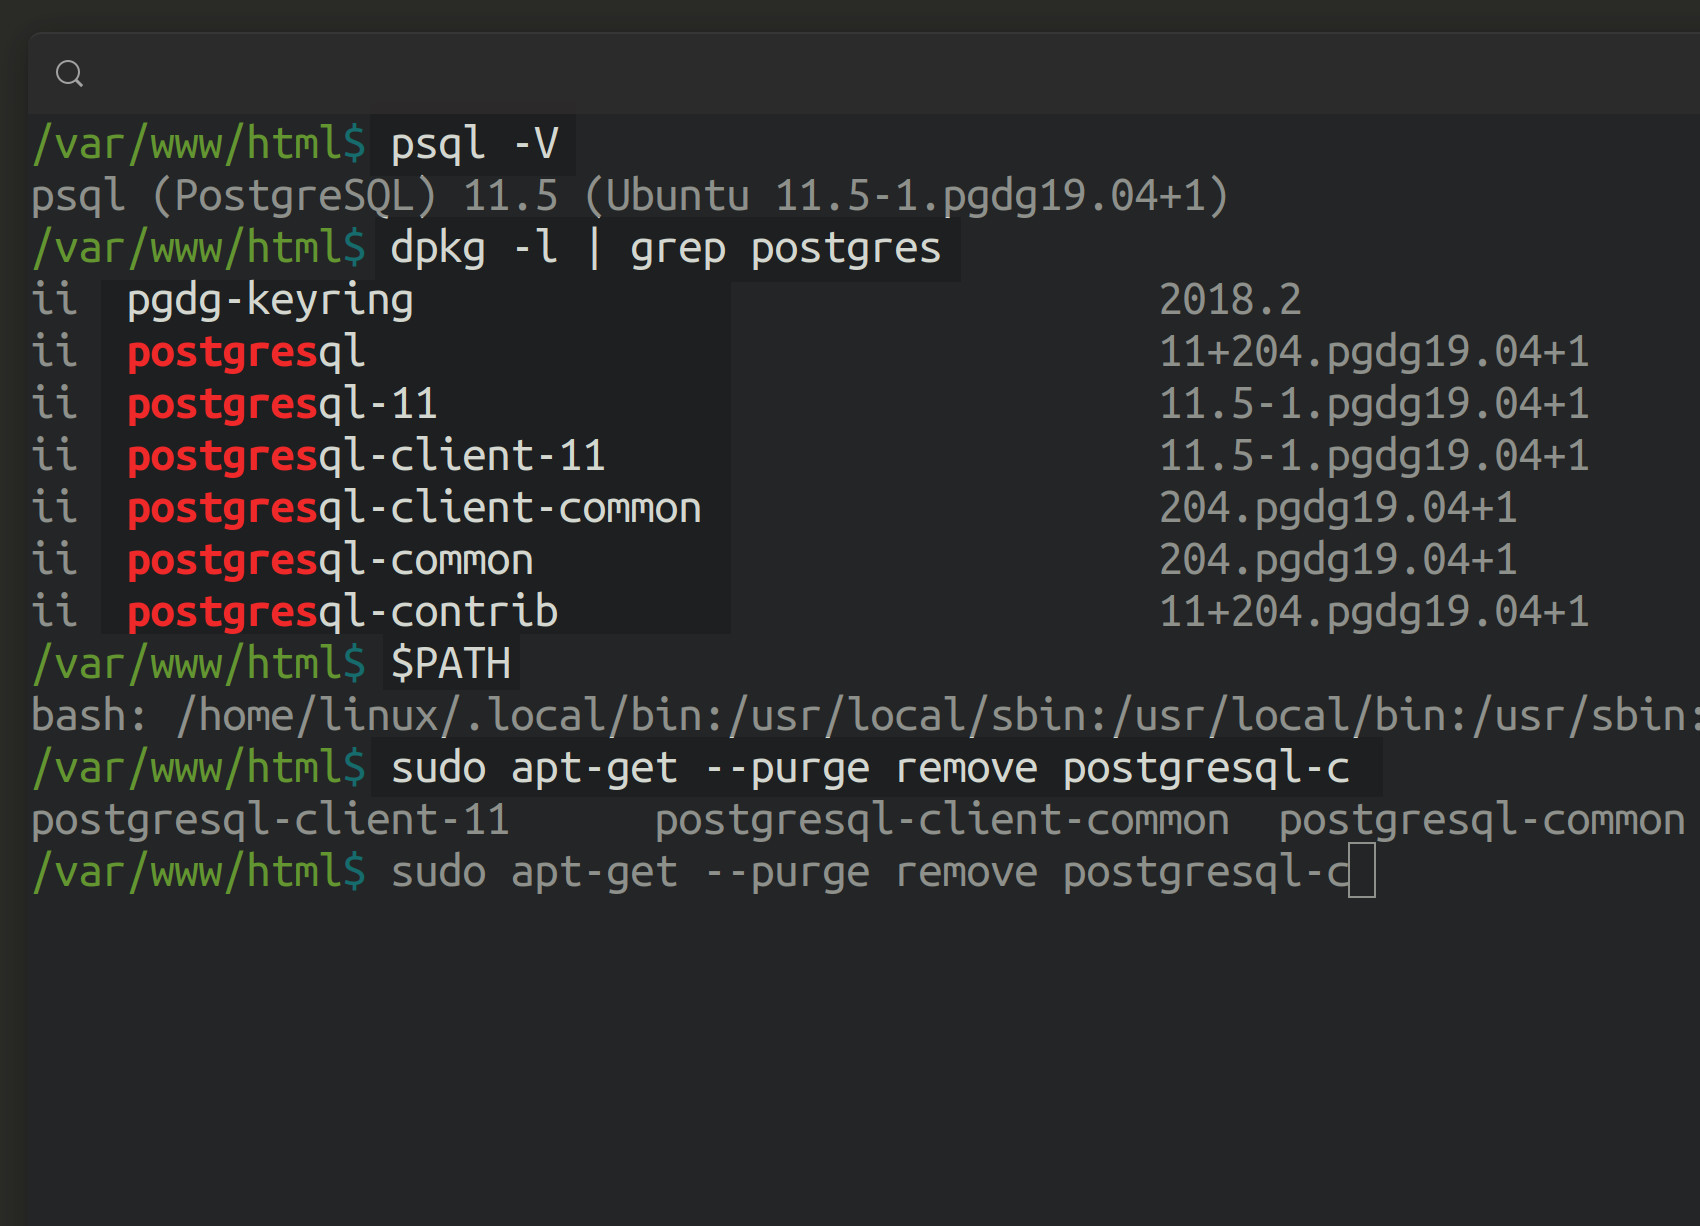 Screenshot of a Debian Ubuntu terminal uninstalling, removing, and purging postgresql